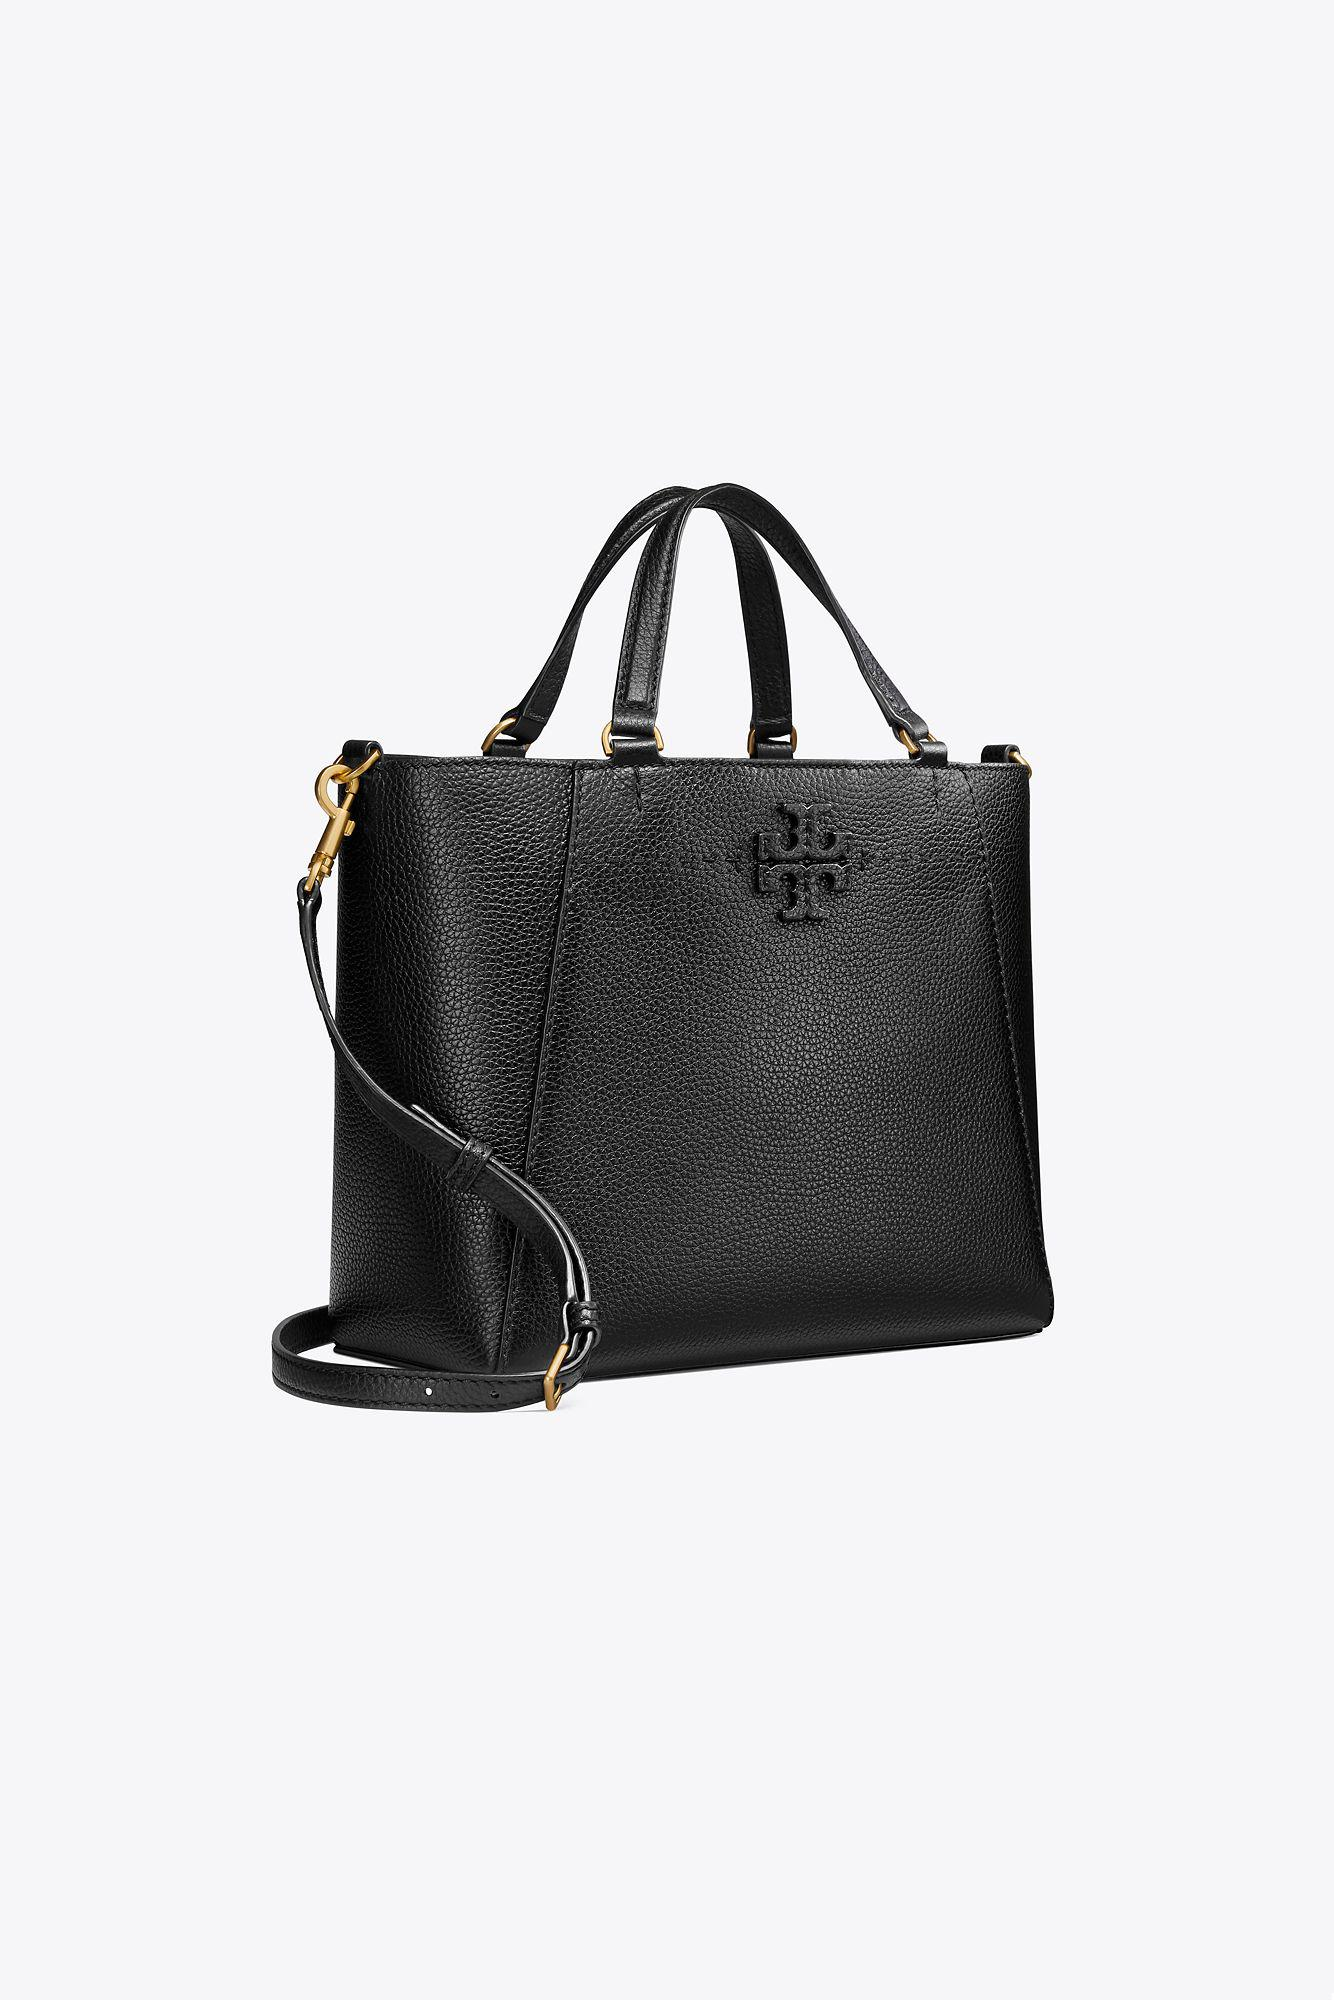 2be63bf369fa Tory Burch - Black Mcgraw Small Carryall - Lyst. View fullscreen